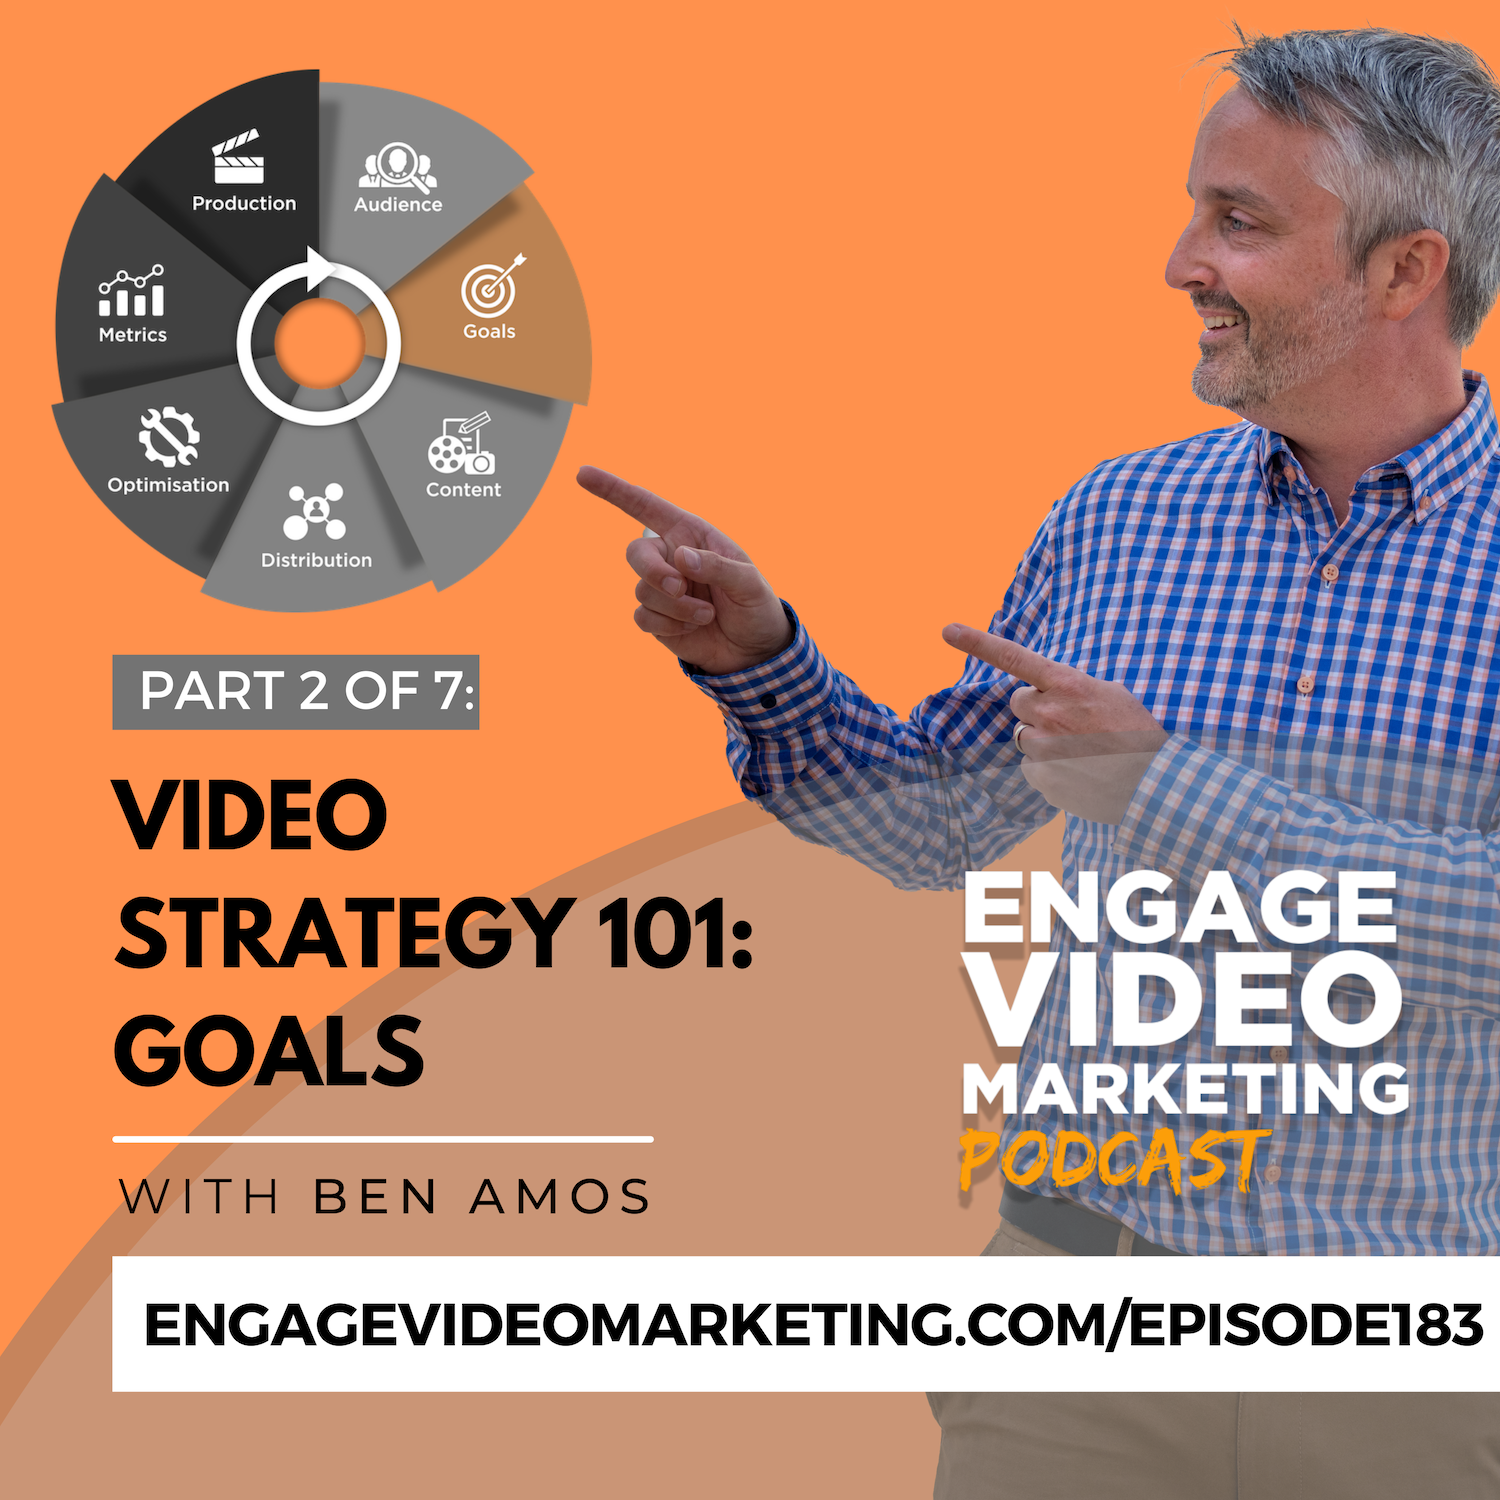 Video Strategy 101: Goals